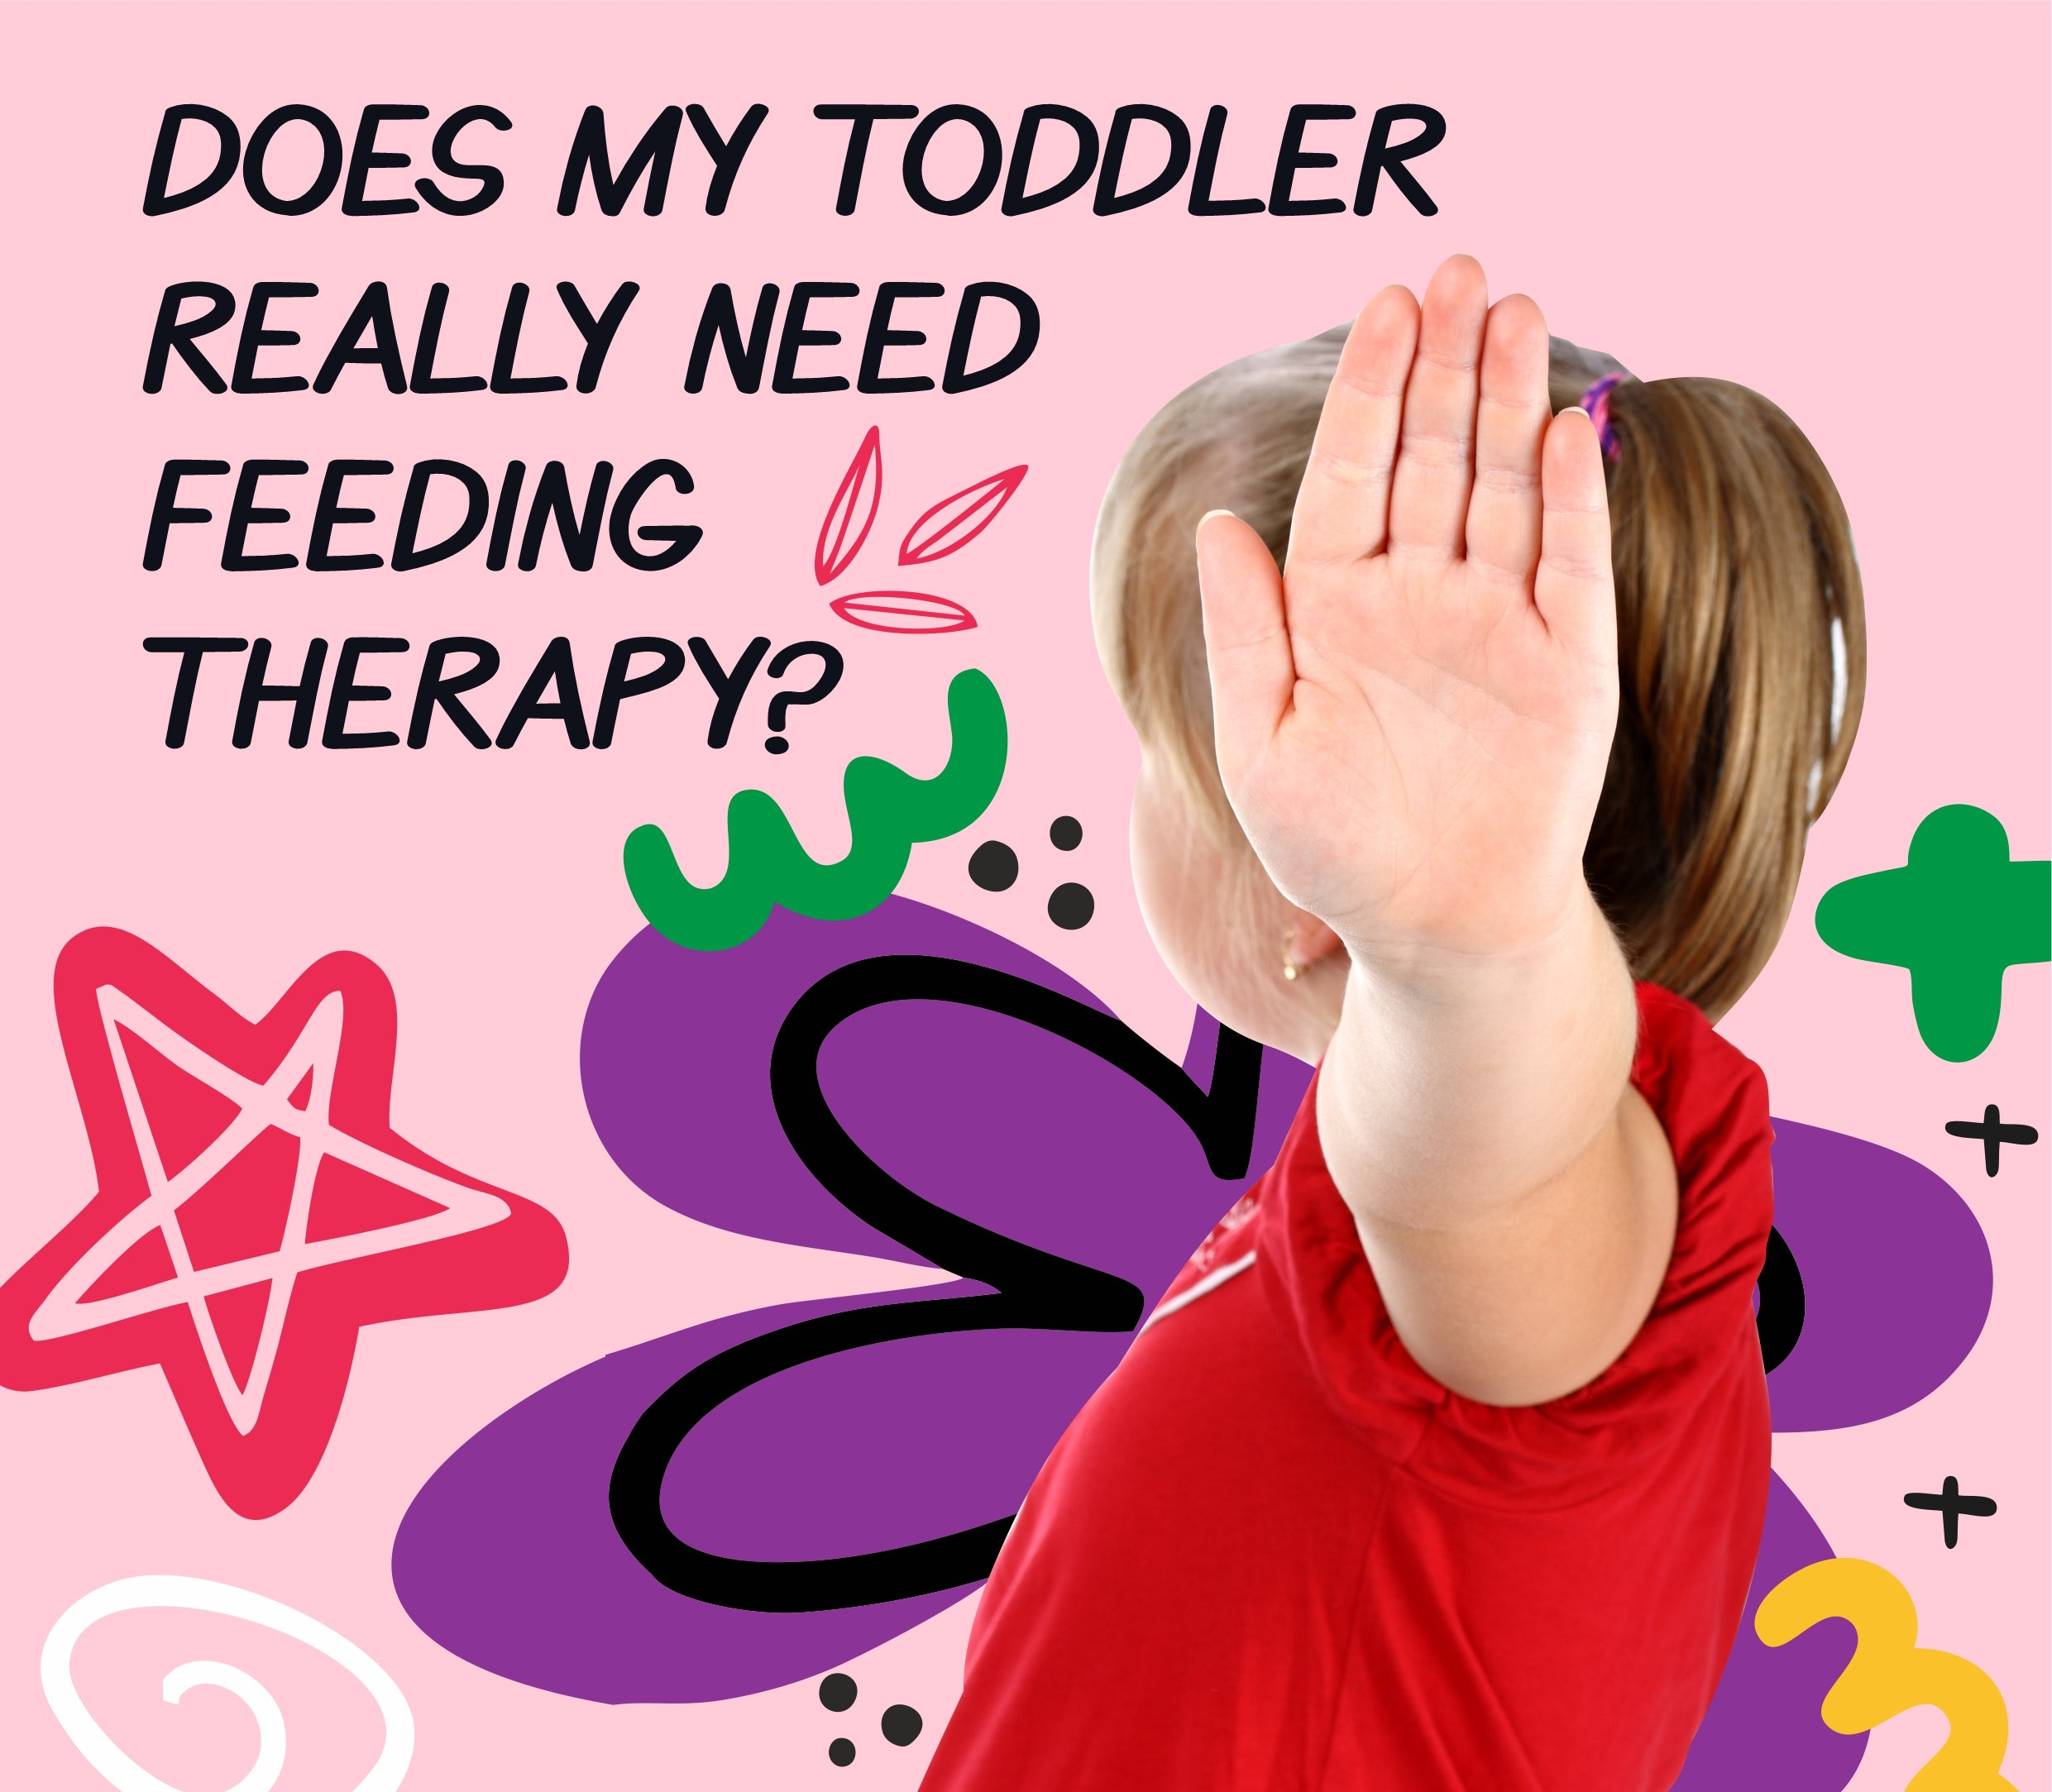 Does my toddler really need feeding therapy?